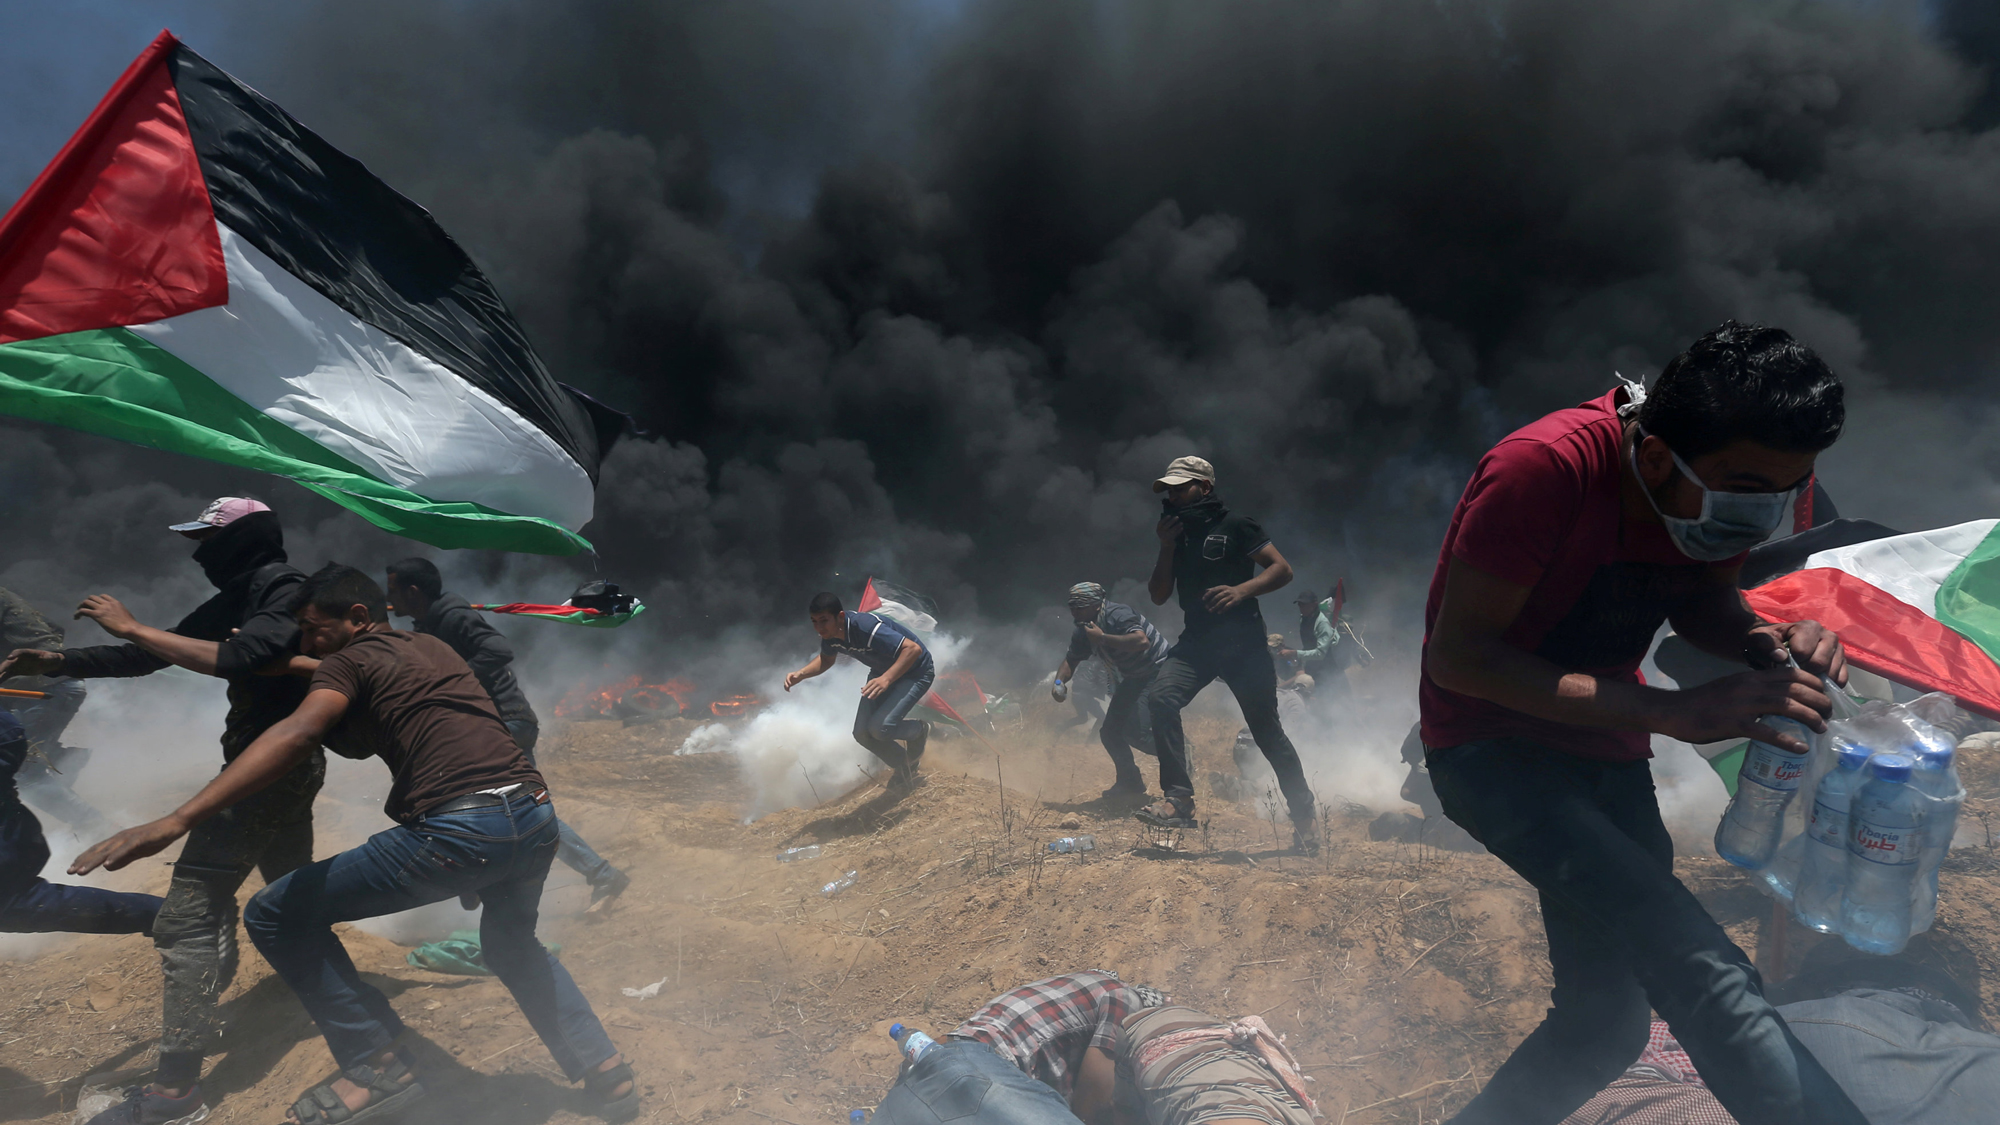 Palestinian demonstrators run for cover from Israeli fire and tear gas during a protest against US embassy move to Jerusalem, May 14, 2018.